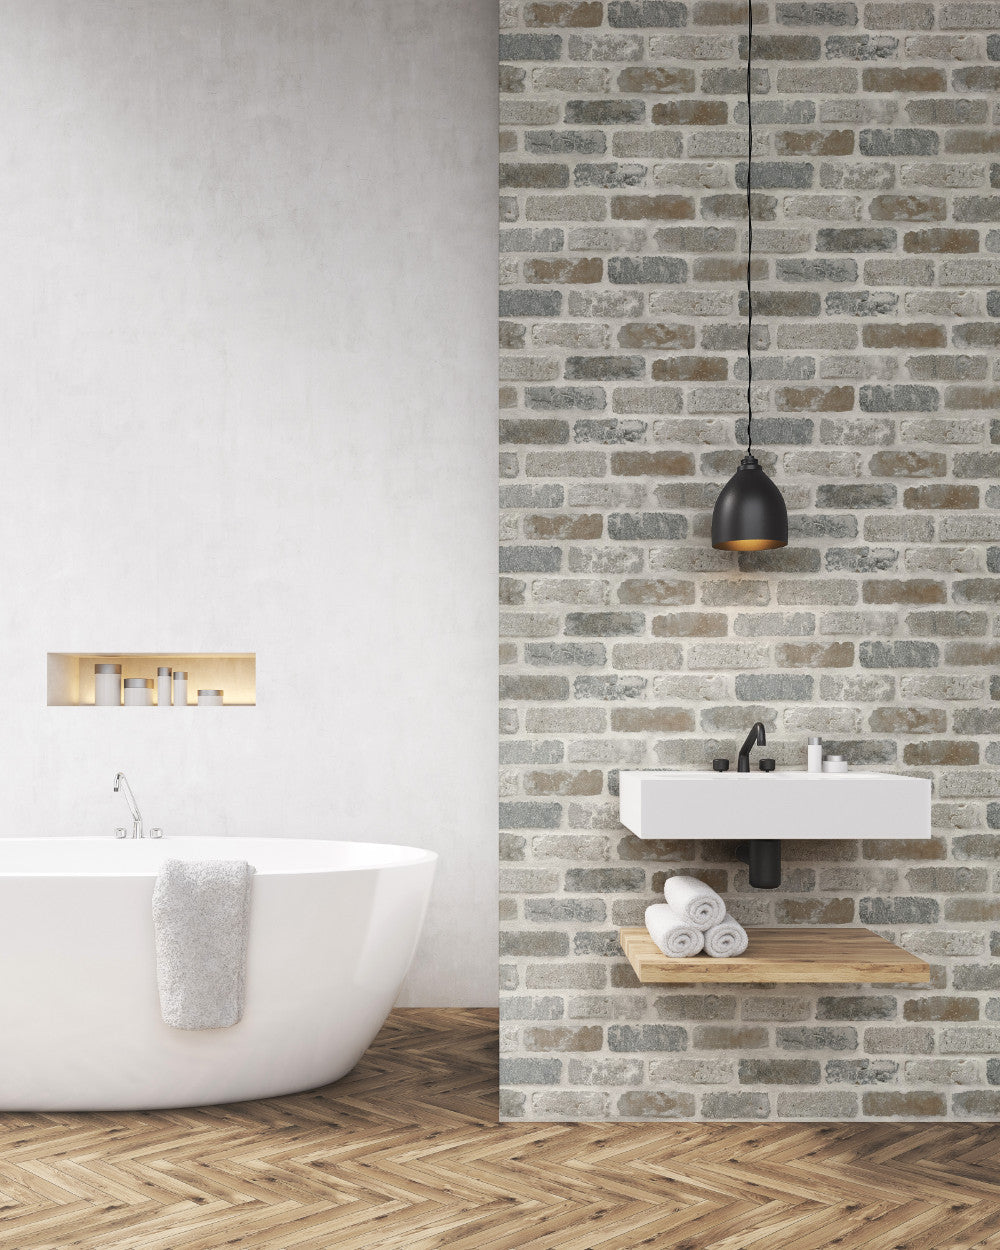 Washed Faux Brick Peel And Stick Wallpaper In Neutrals By Nextwall